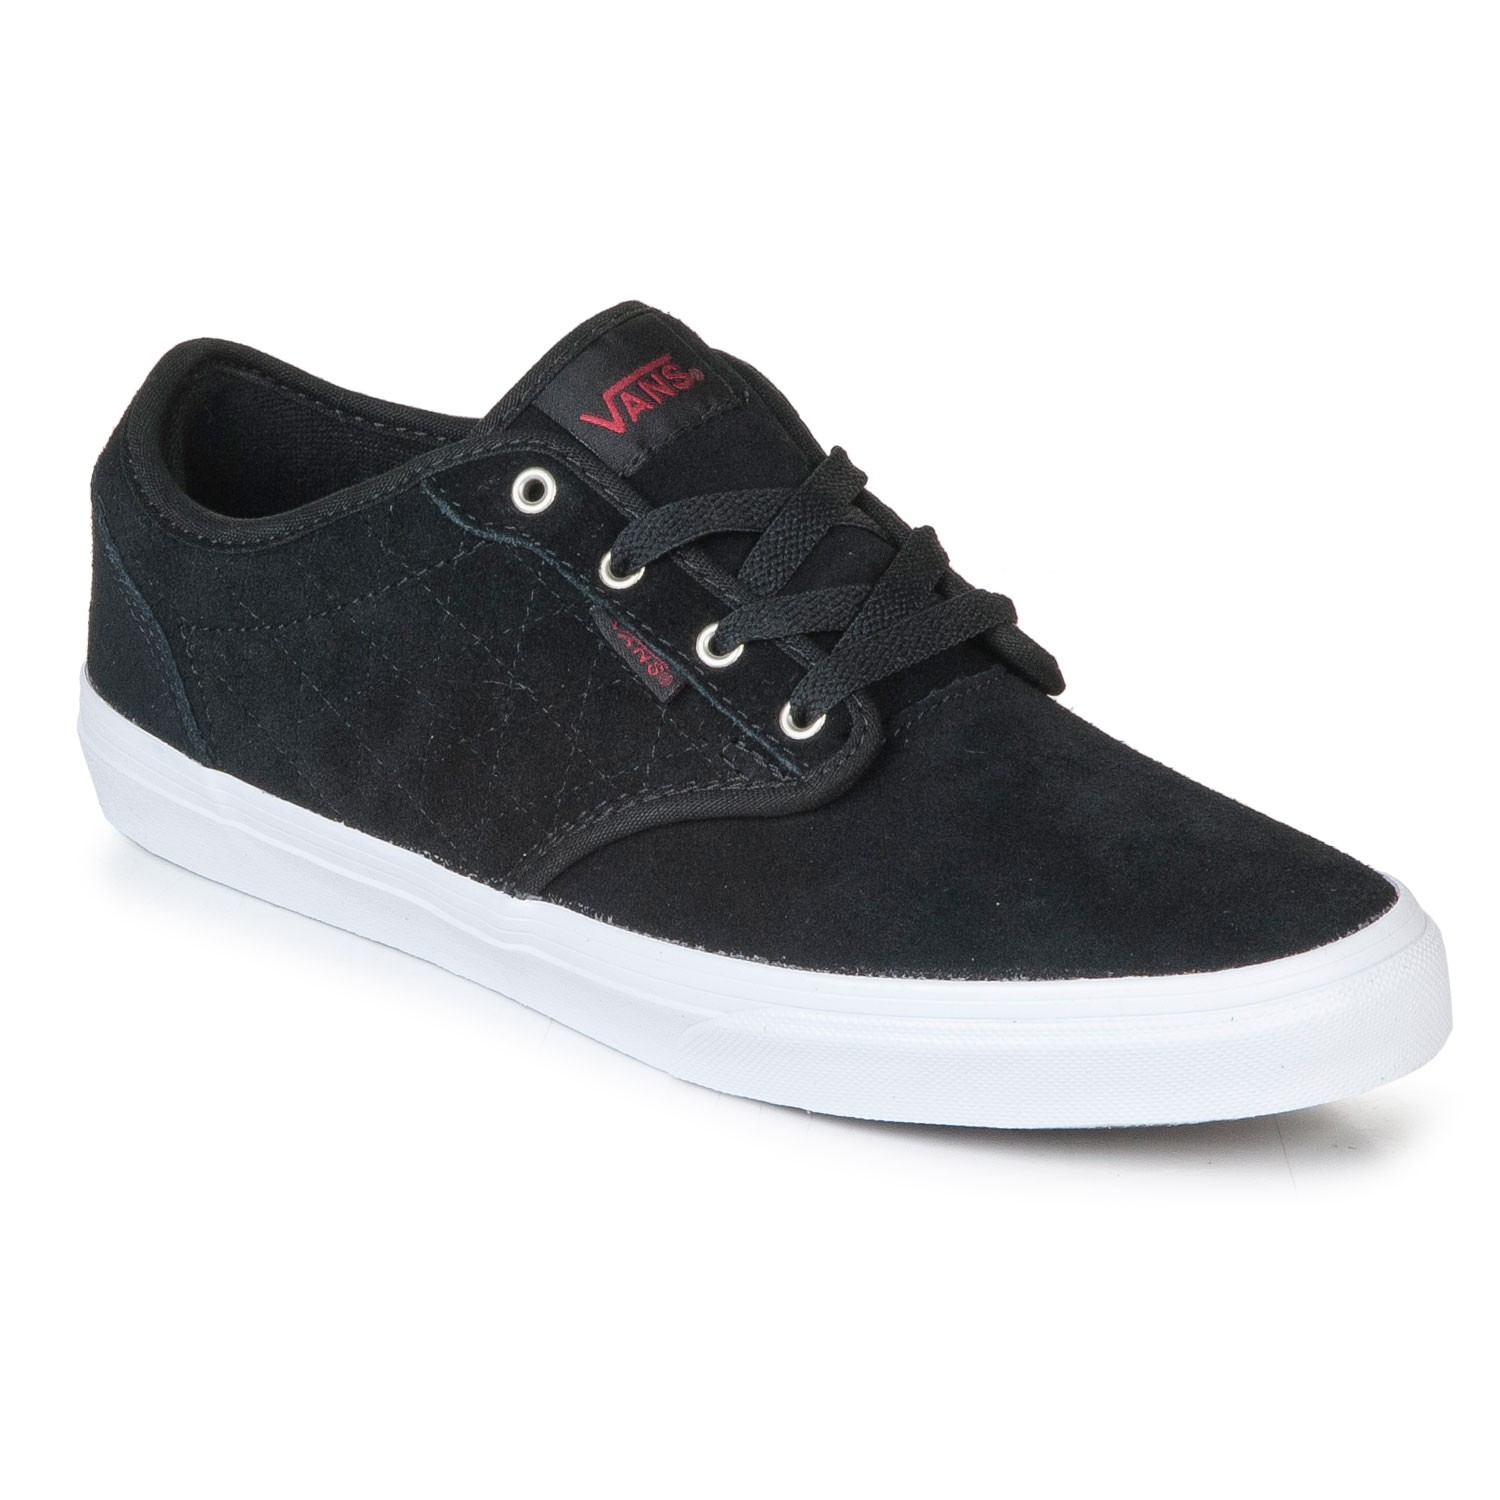 491287ca60cc Buy vans black atwood shoes